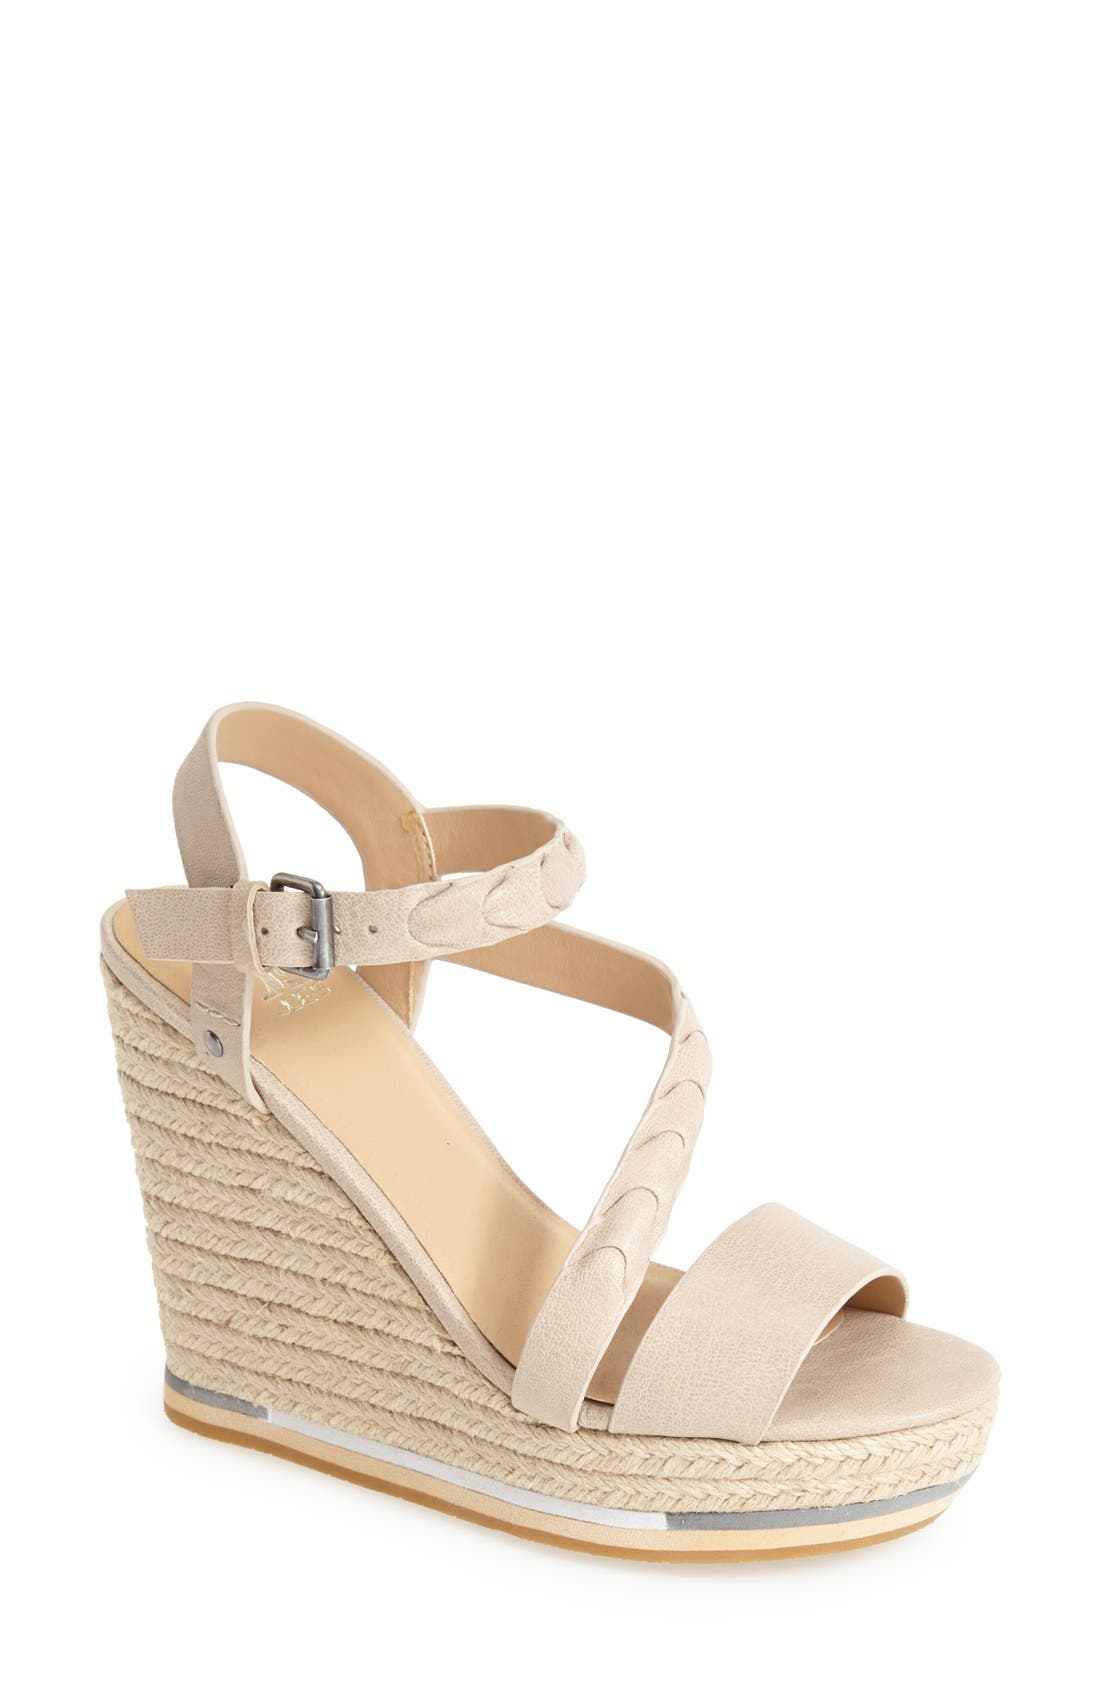 Alternate Image 1 Selected - Joe's 'Rane' Espadrille Wedge Sandal (Women)